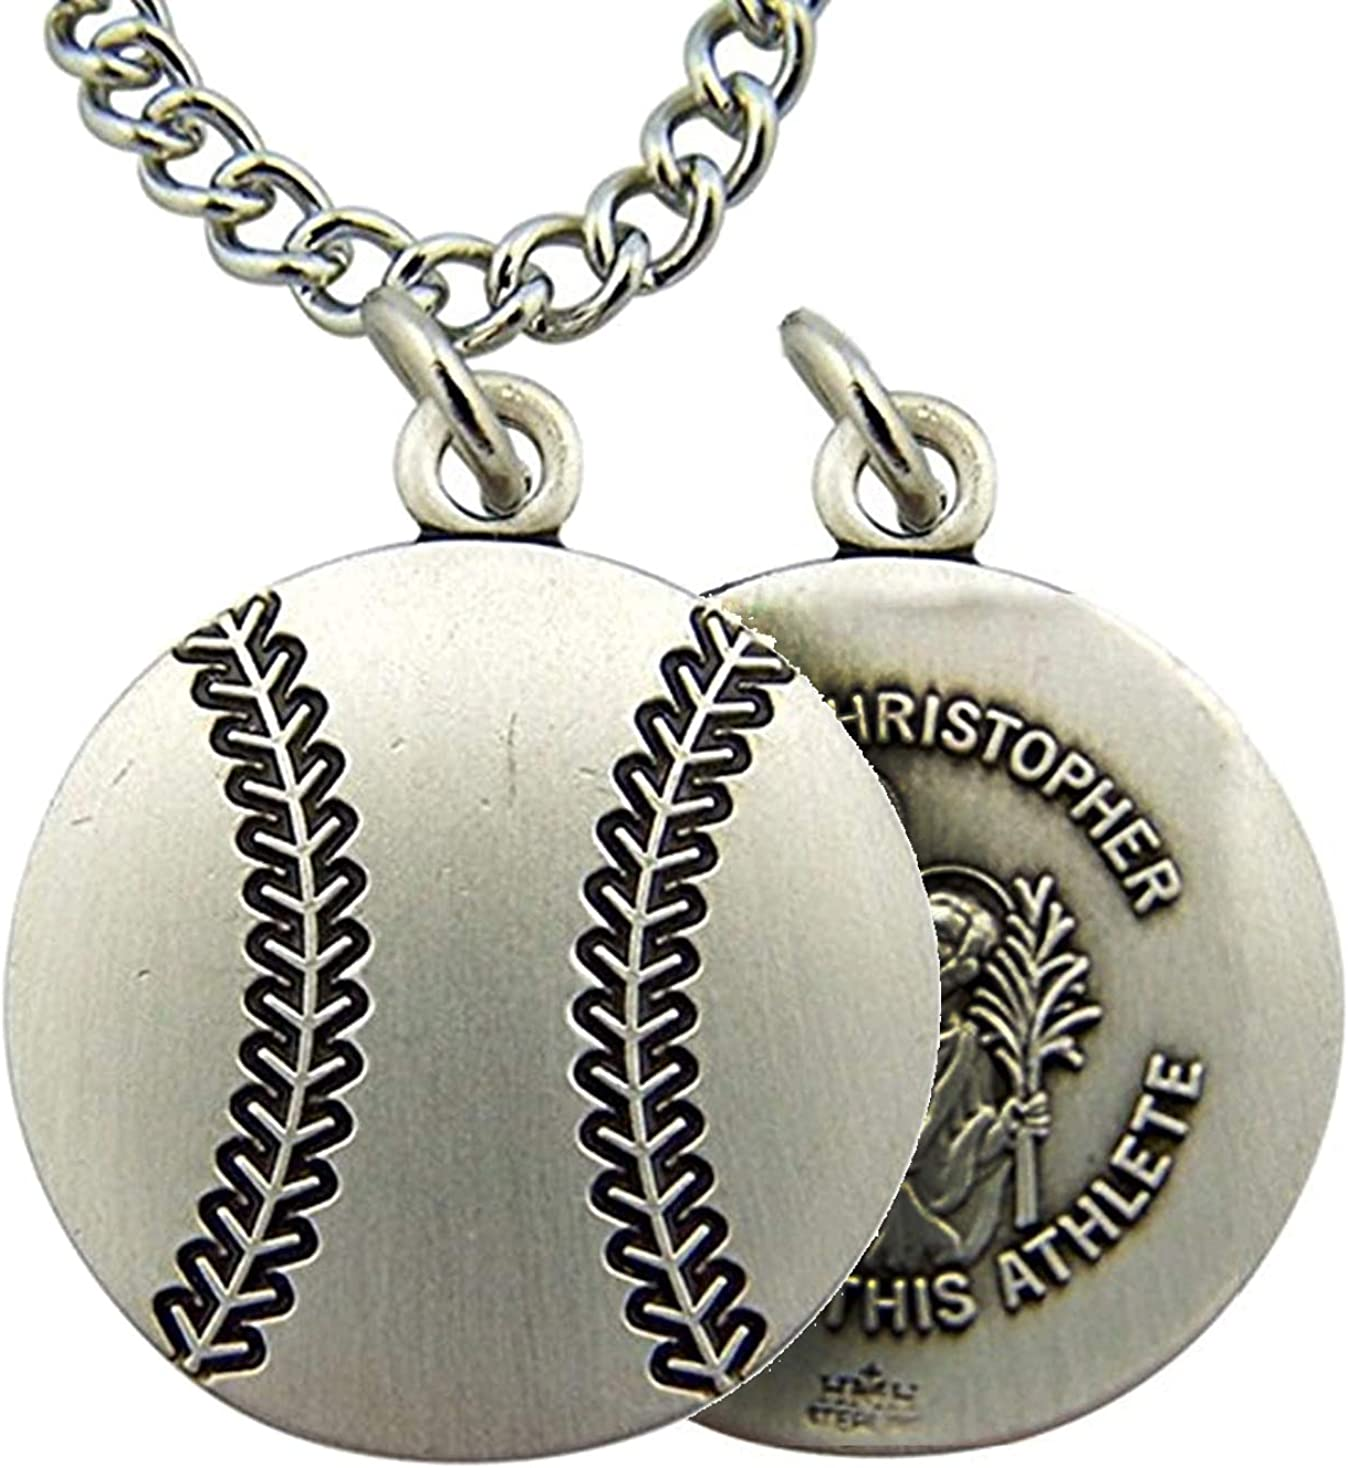 Perfect Jewelry Gift Sterling Silver Rhodium-plated Saint Christopher Medal Pin